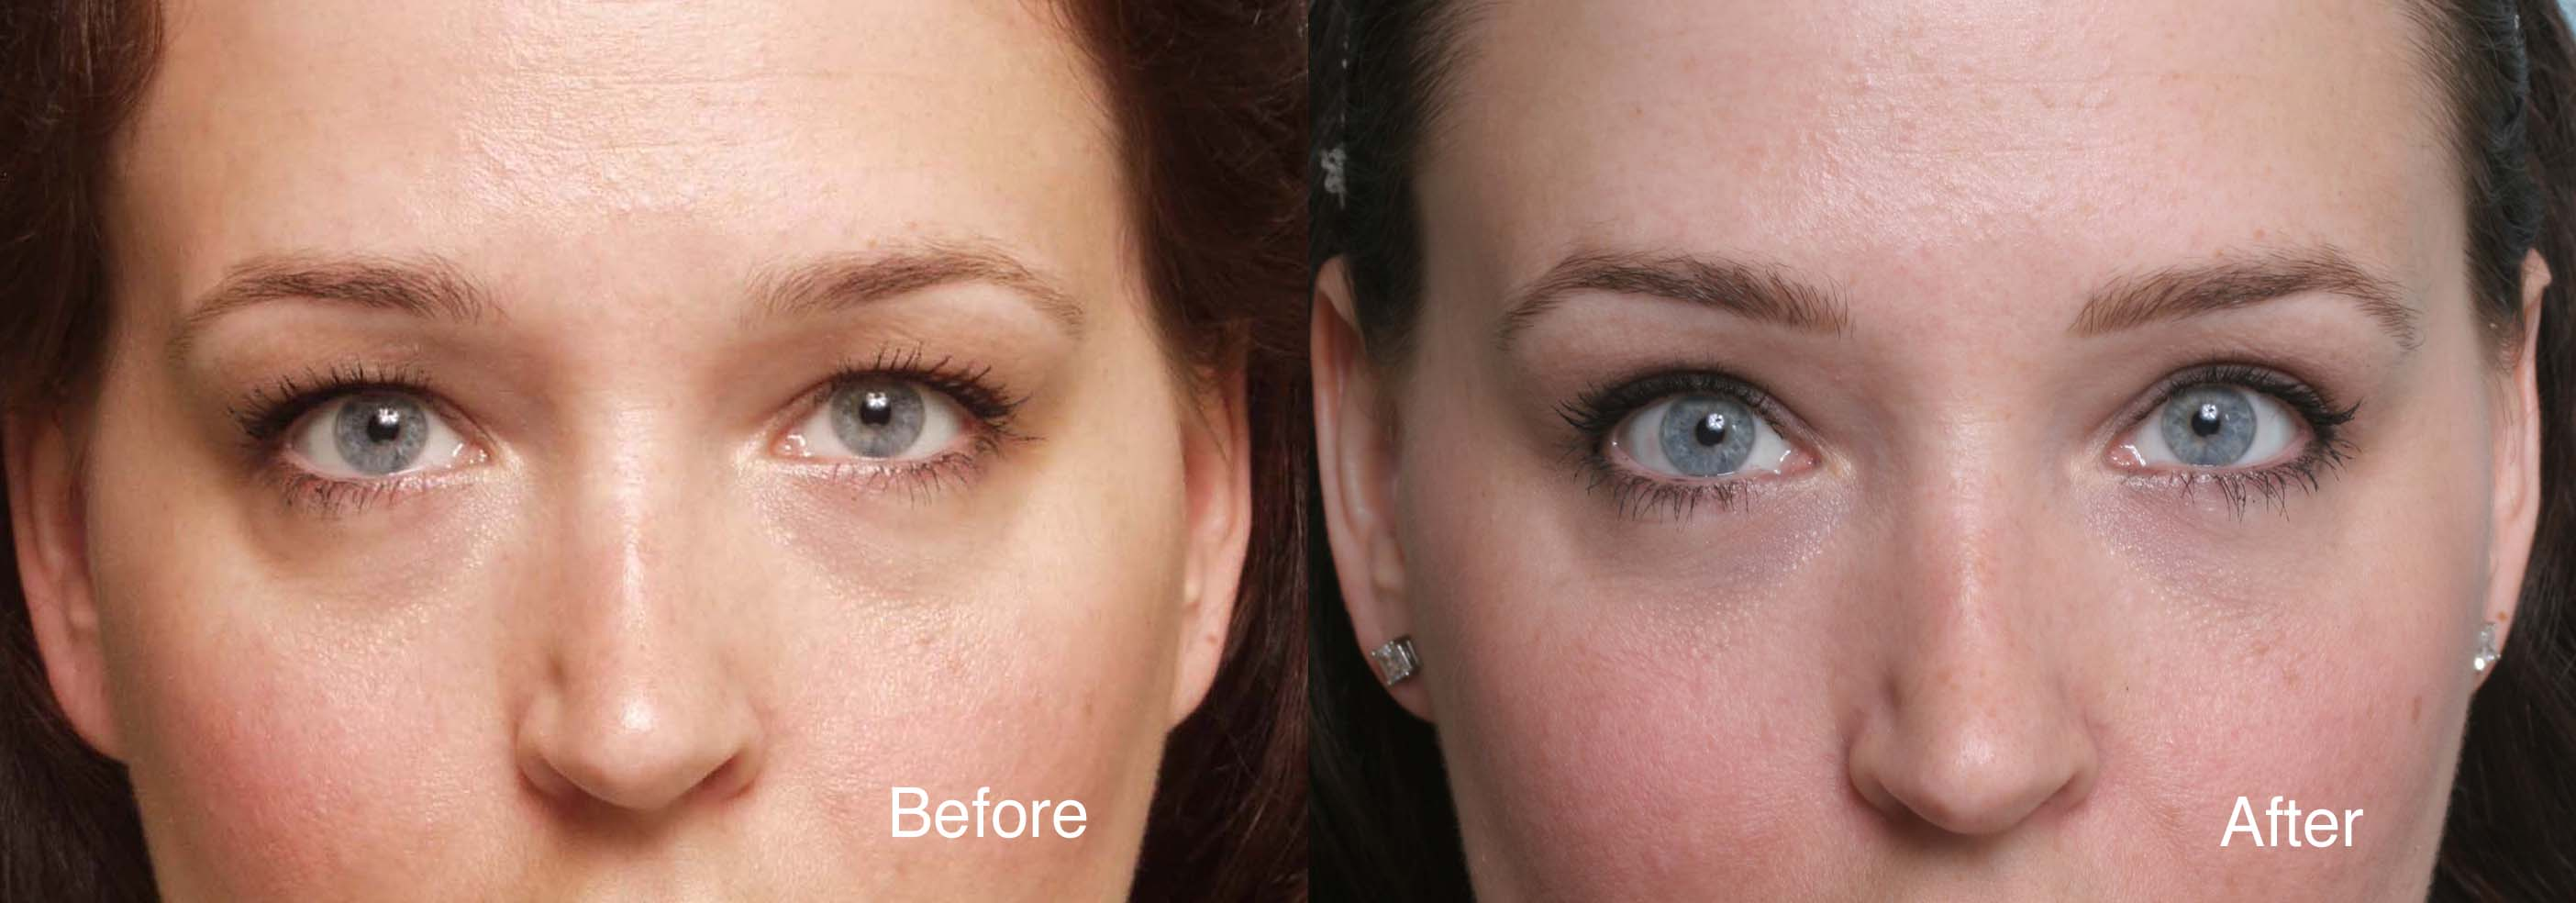 Hollow Eyes Post Plastic Surgery Before After photo - 1